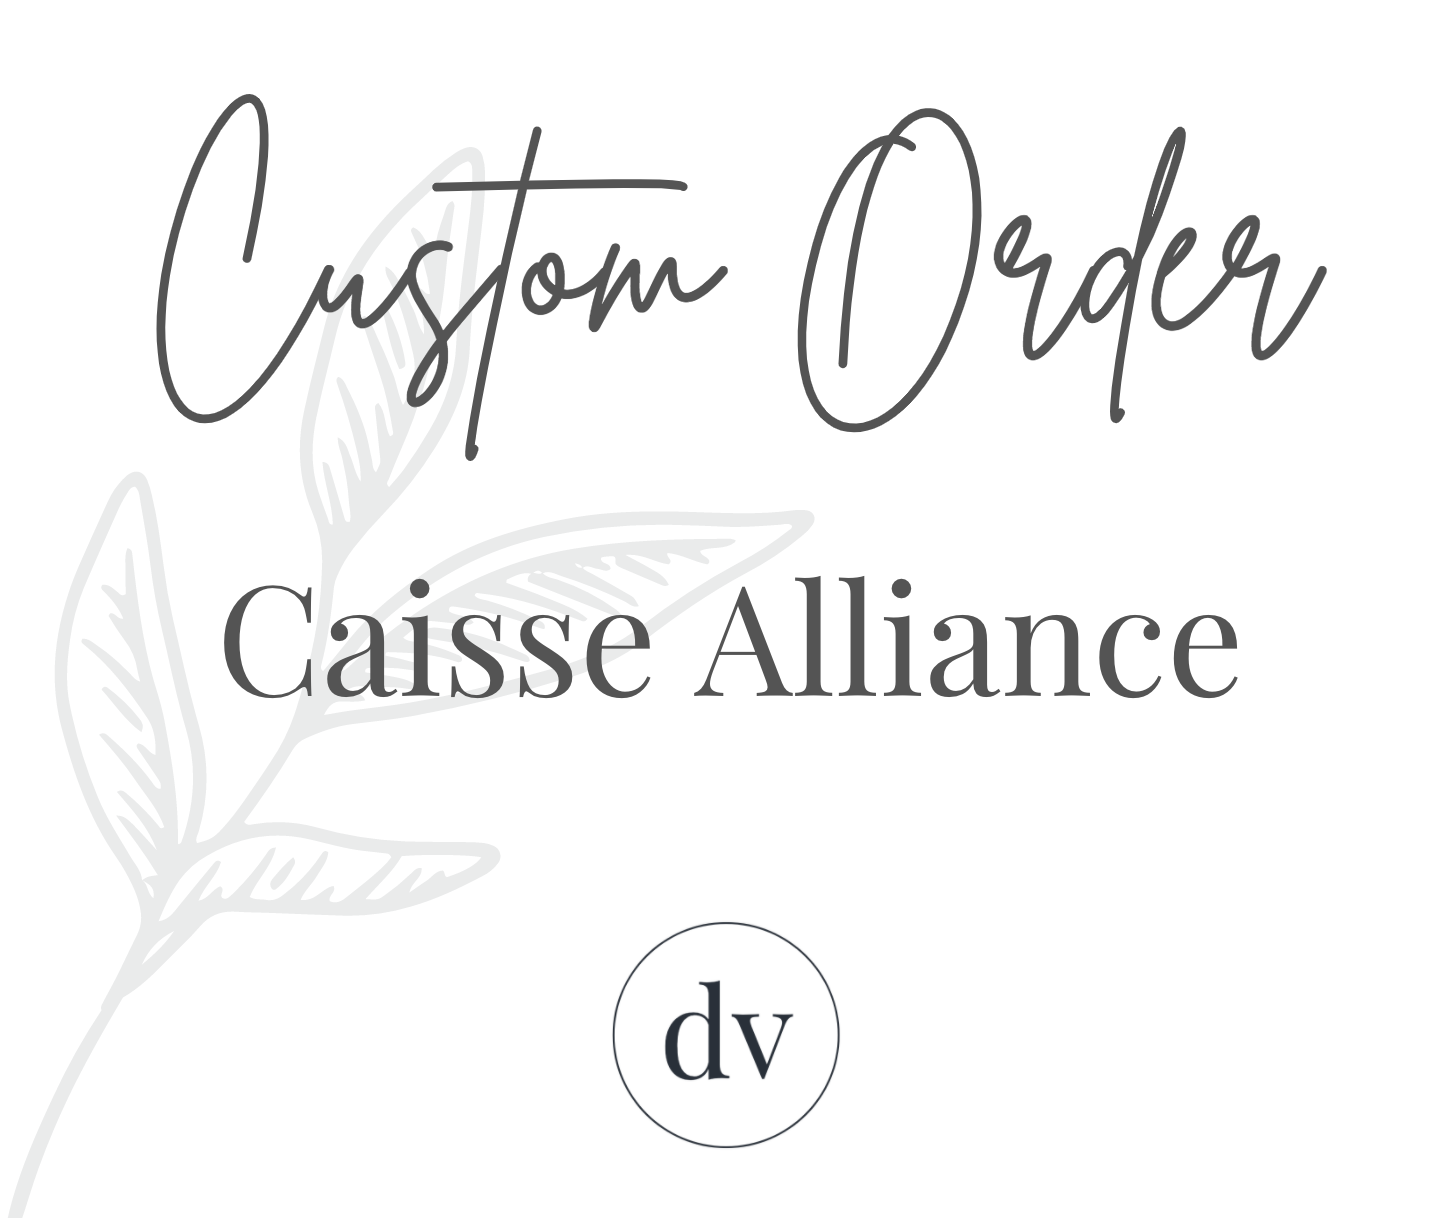 Custom Business Sign for Caisse Alliance